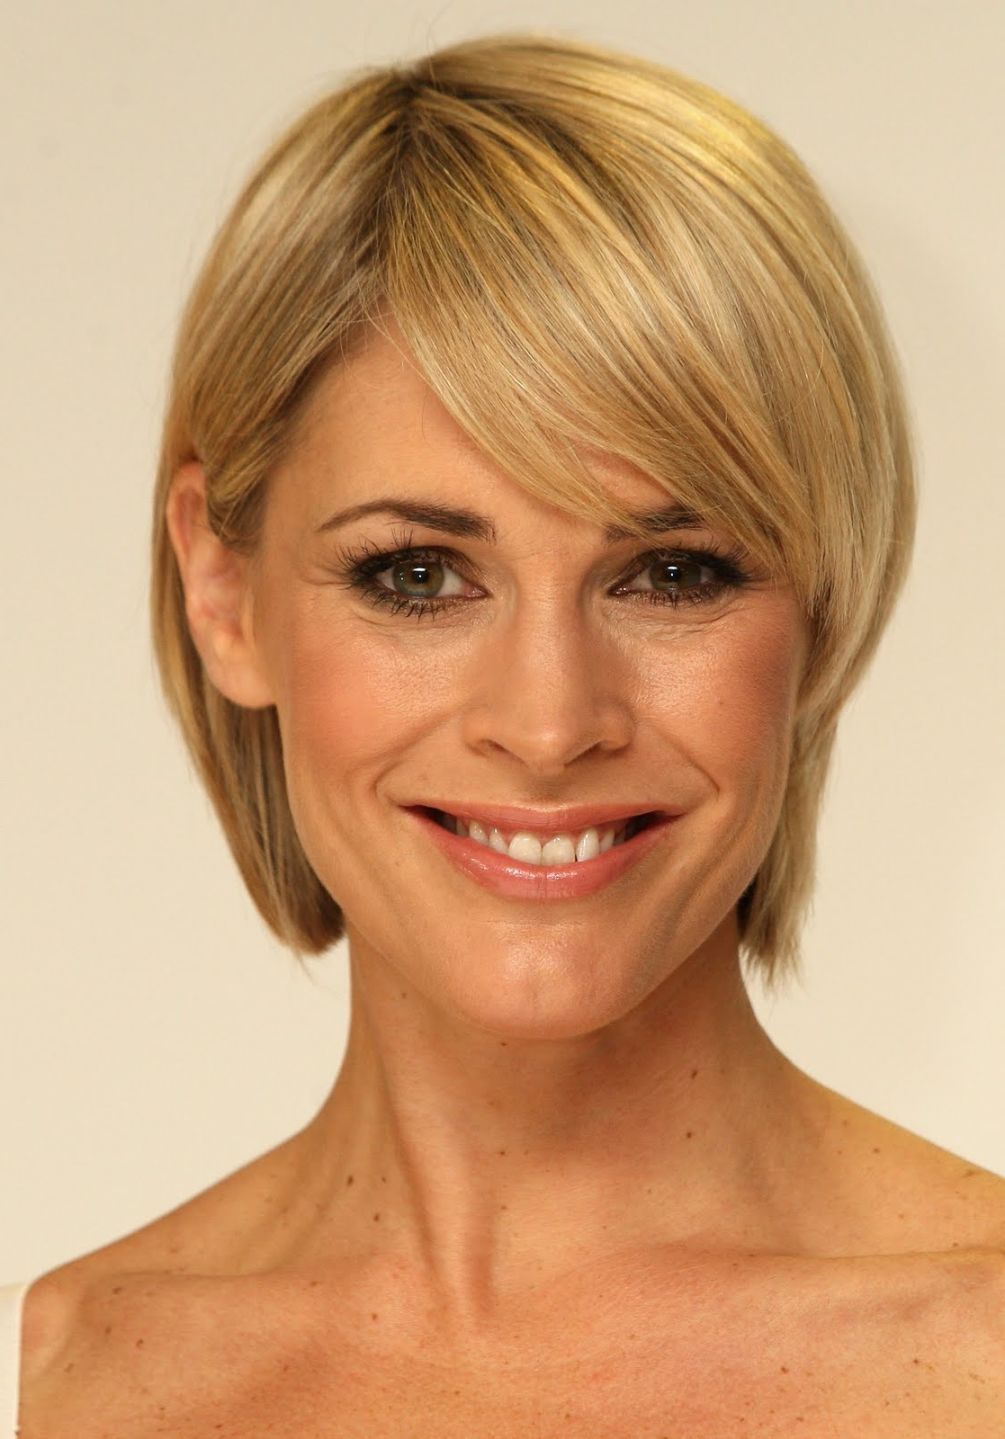 39+ Haircut for very thin hair and oval face trends